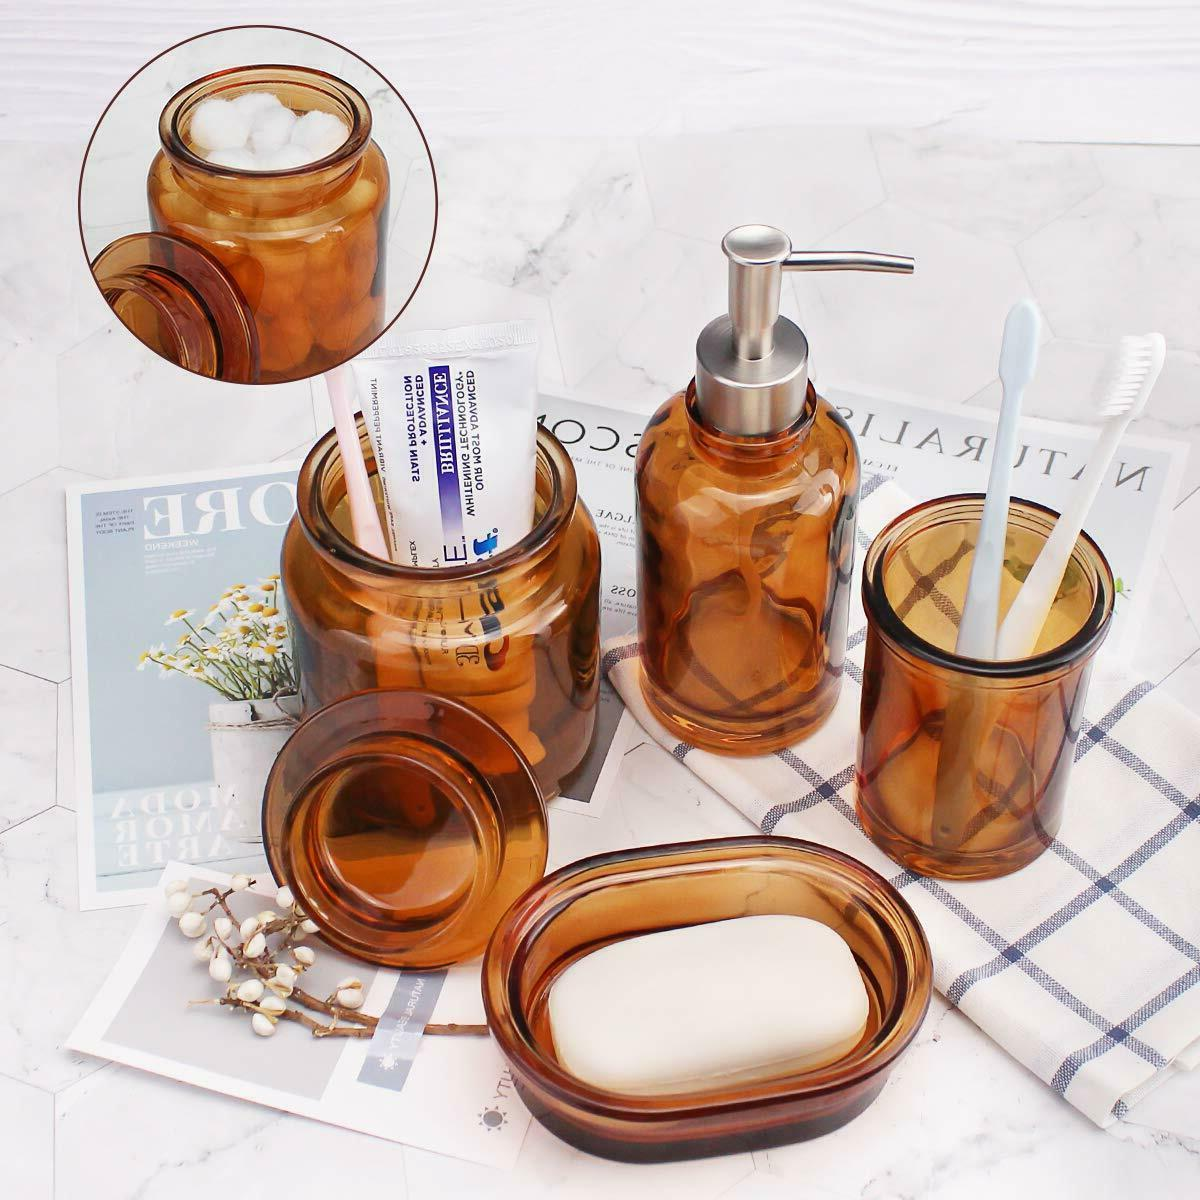 Glass Bathroom Accessories Soap Holder, Tumbler